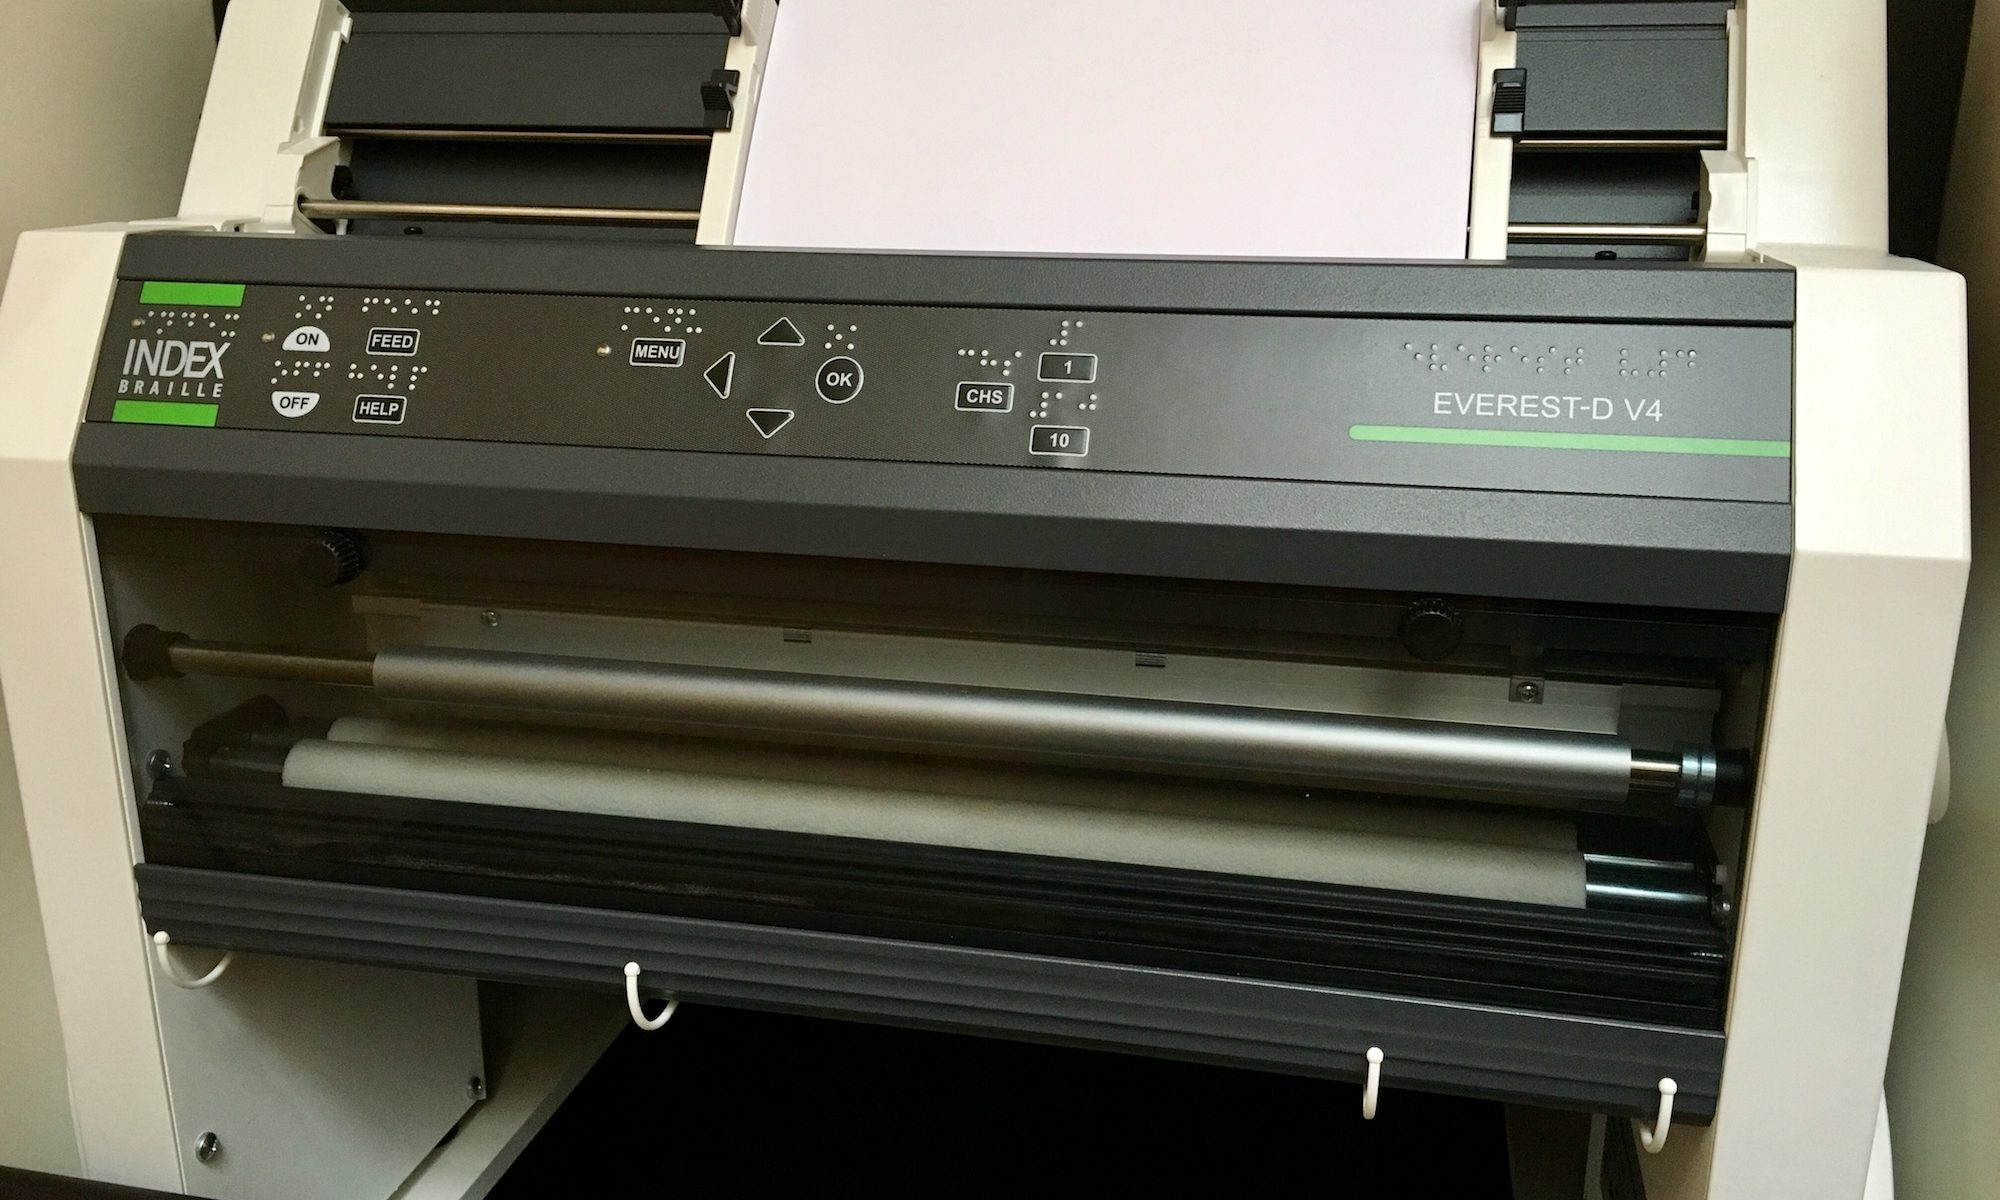 Brailledrucker index everest v4